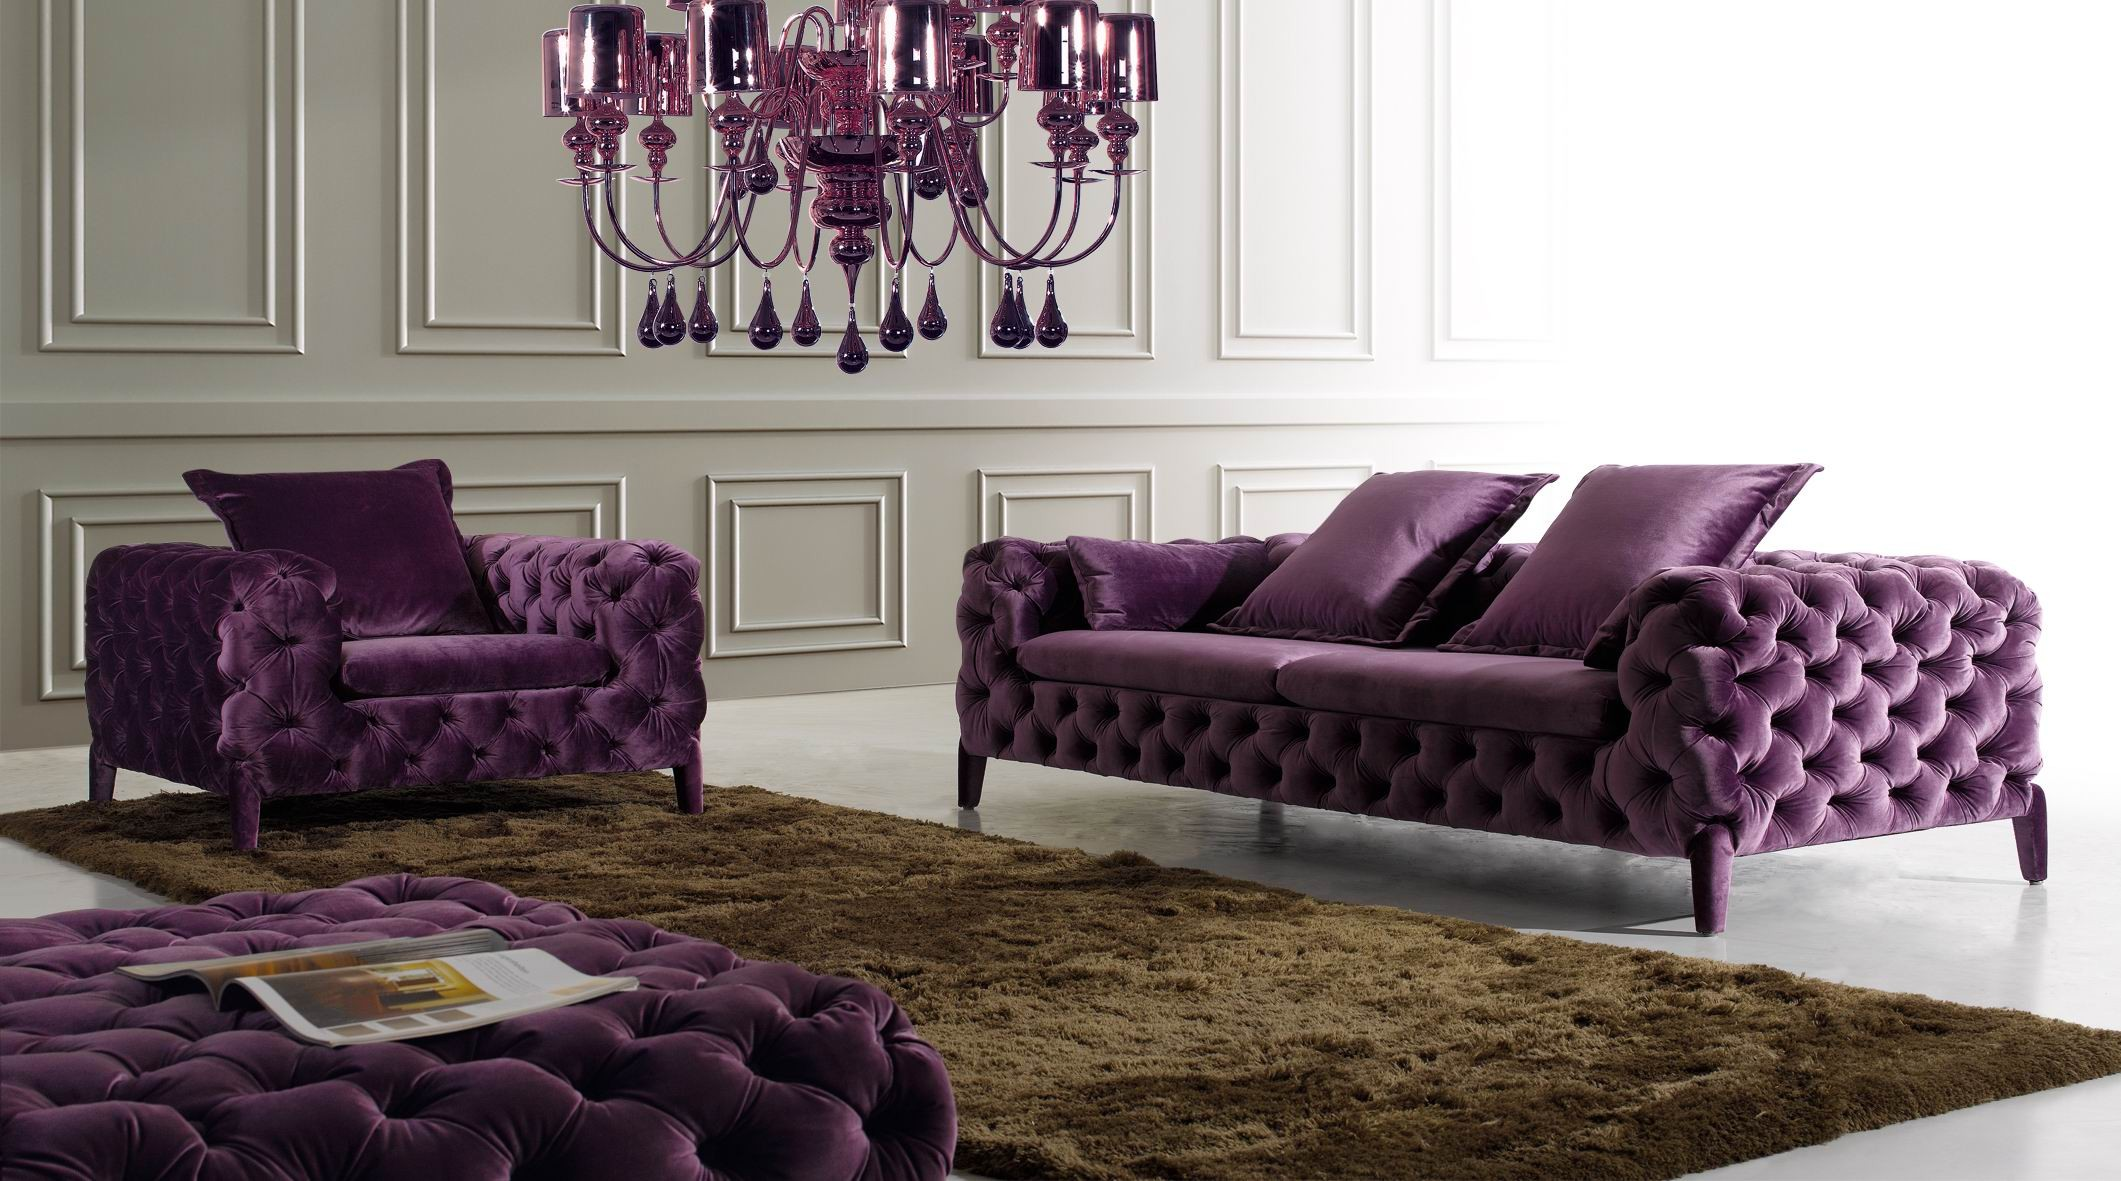 furniture-elegant-purple-upholstered-tufted-velvet-luxury-sofas-with-soft-foam-cushioning-and-sweet-purple-pillow-also-tapered-block-feet-on-area-brown-fur-rug-as-well-as-sofa-stores-and-discount-furn.jpg